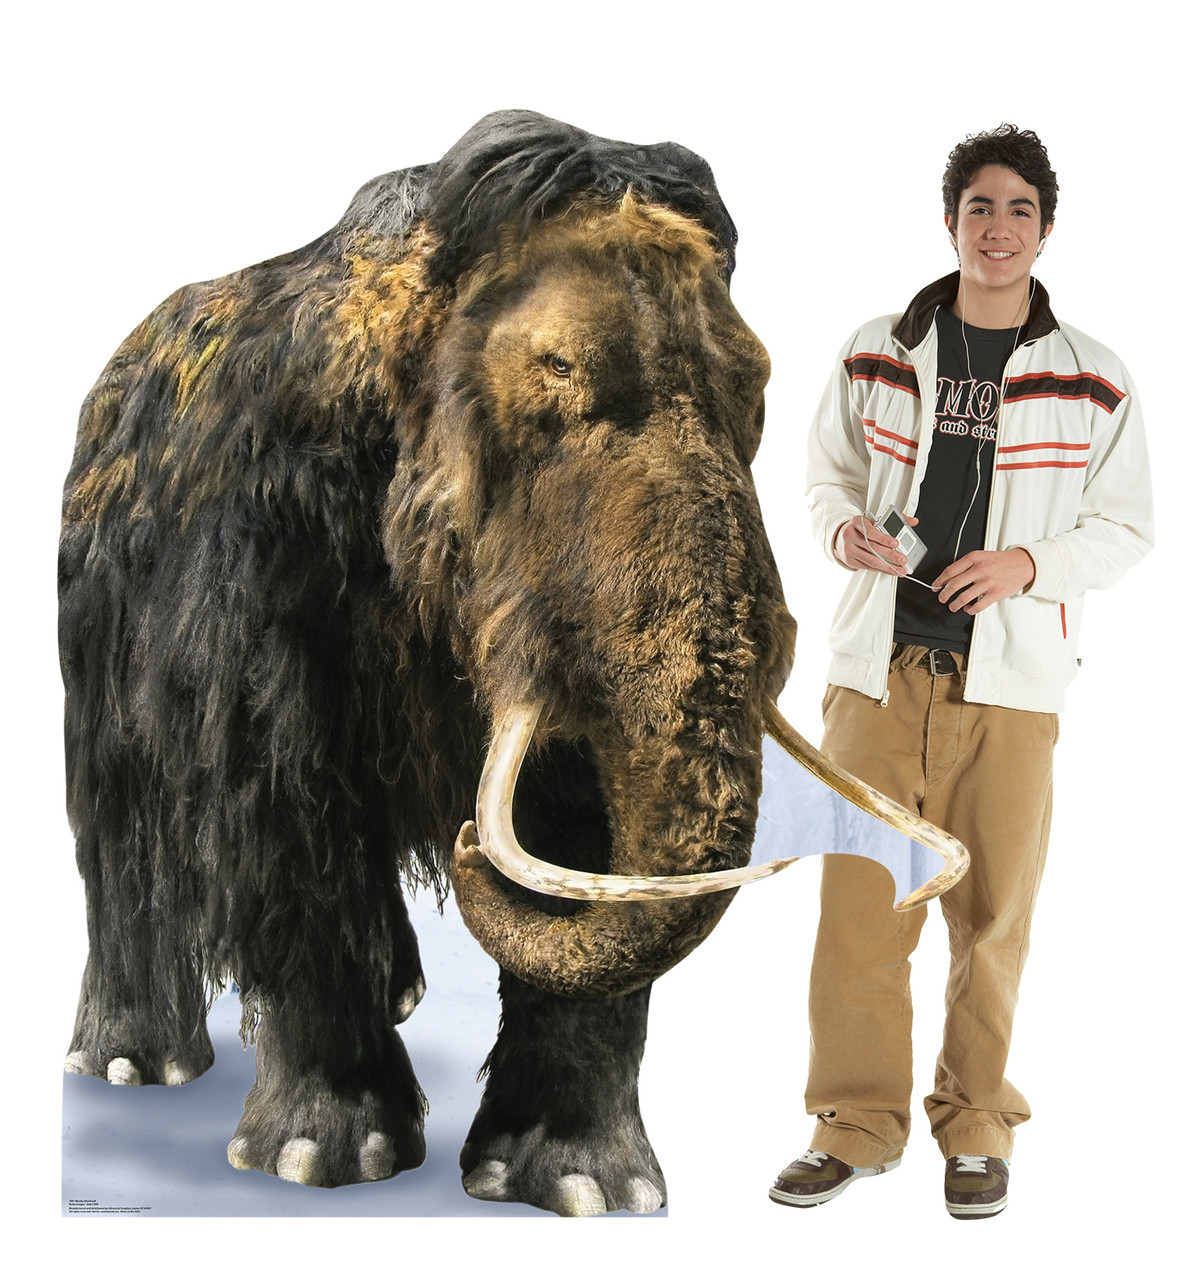 Life-size cardboard standee of the Woolly Mammoth with model.